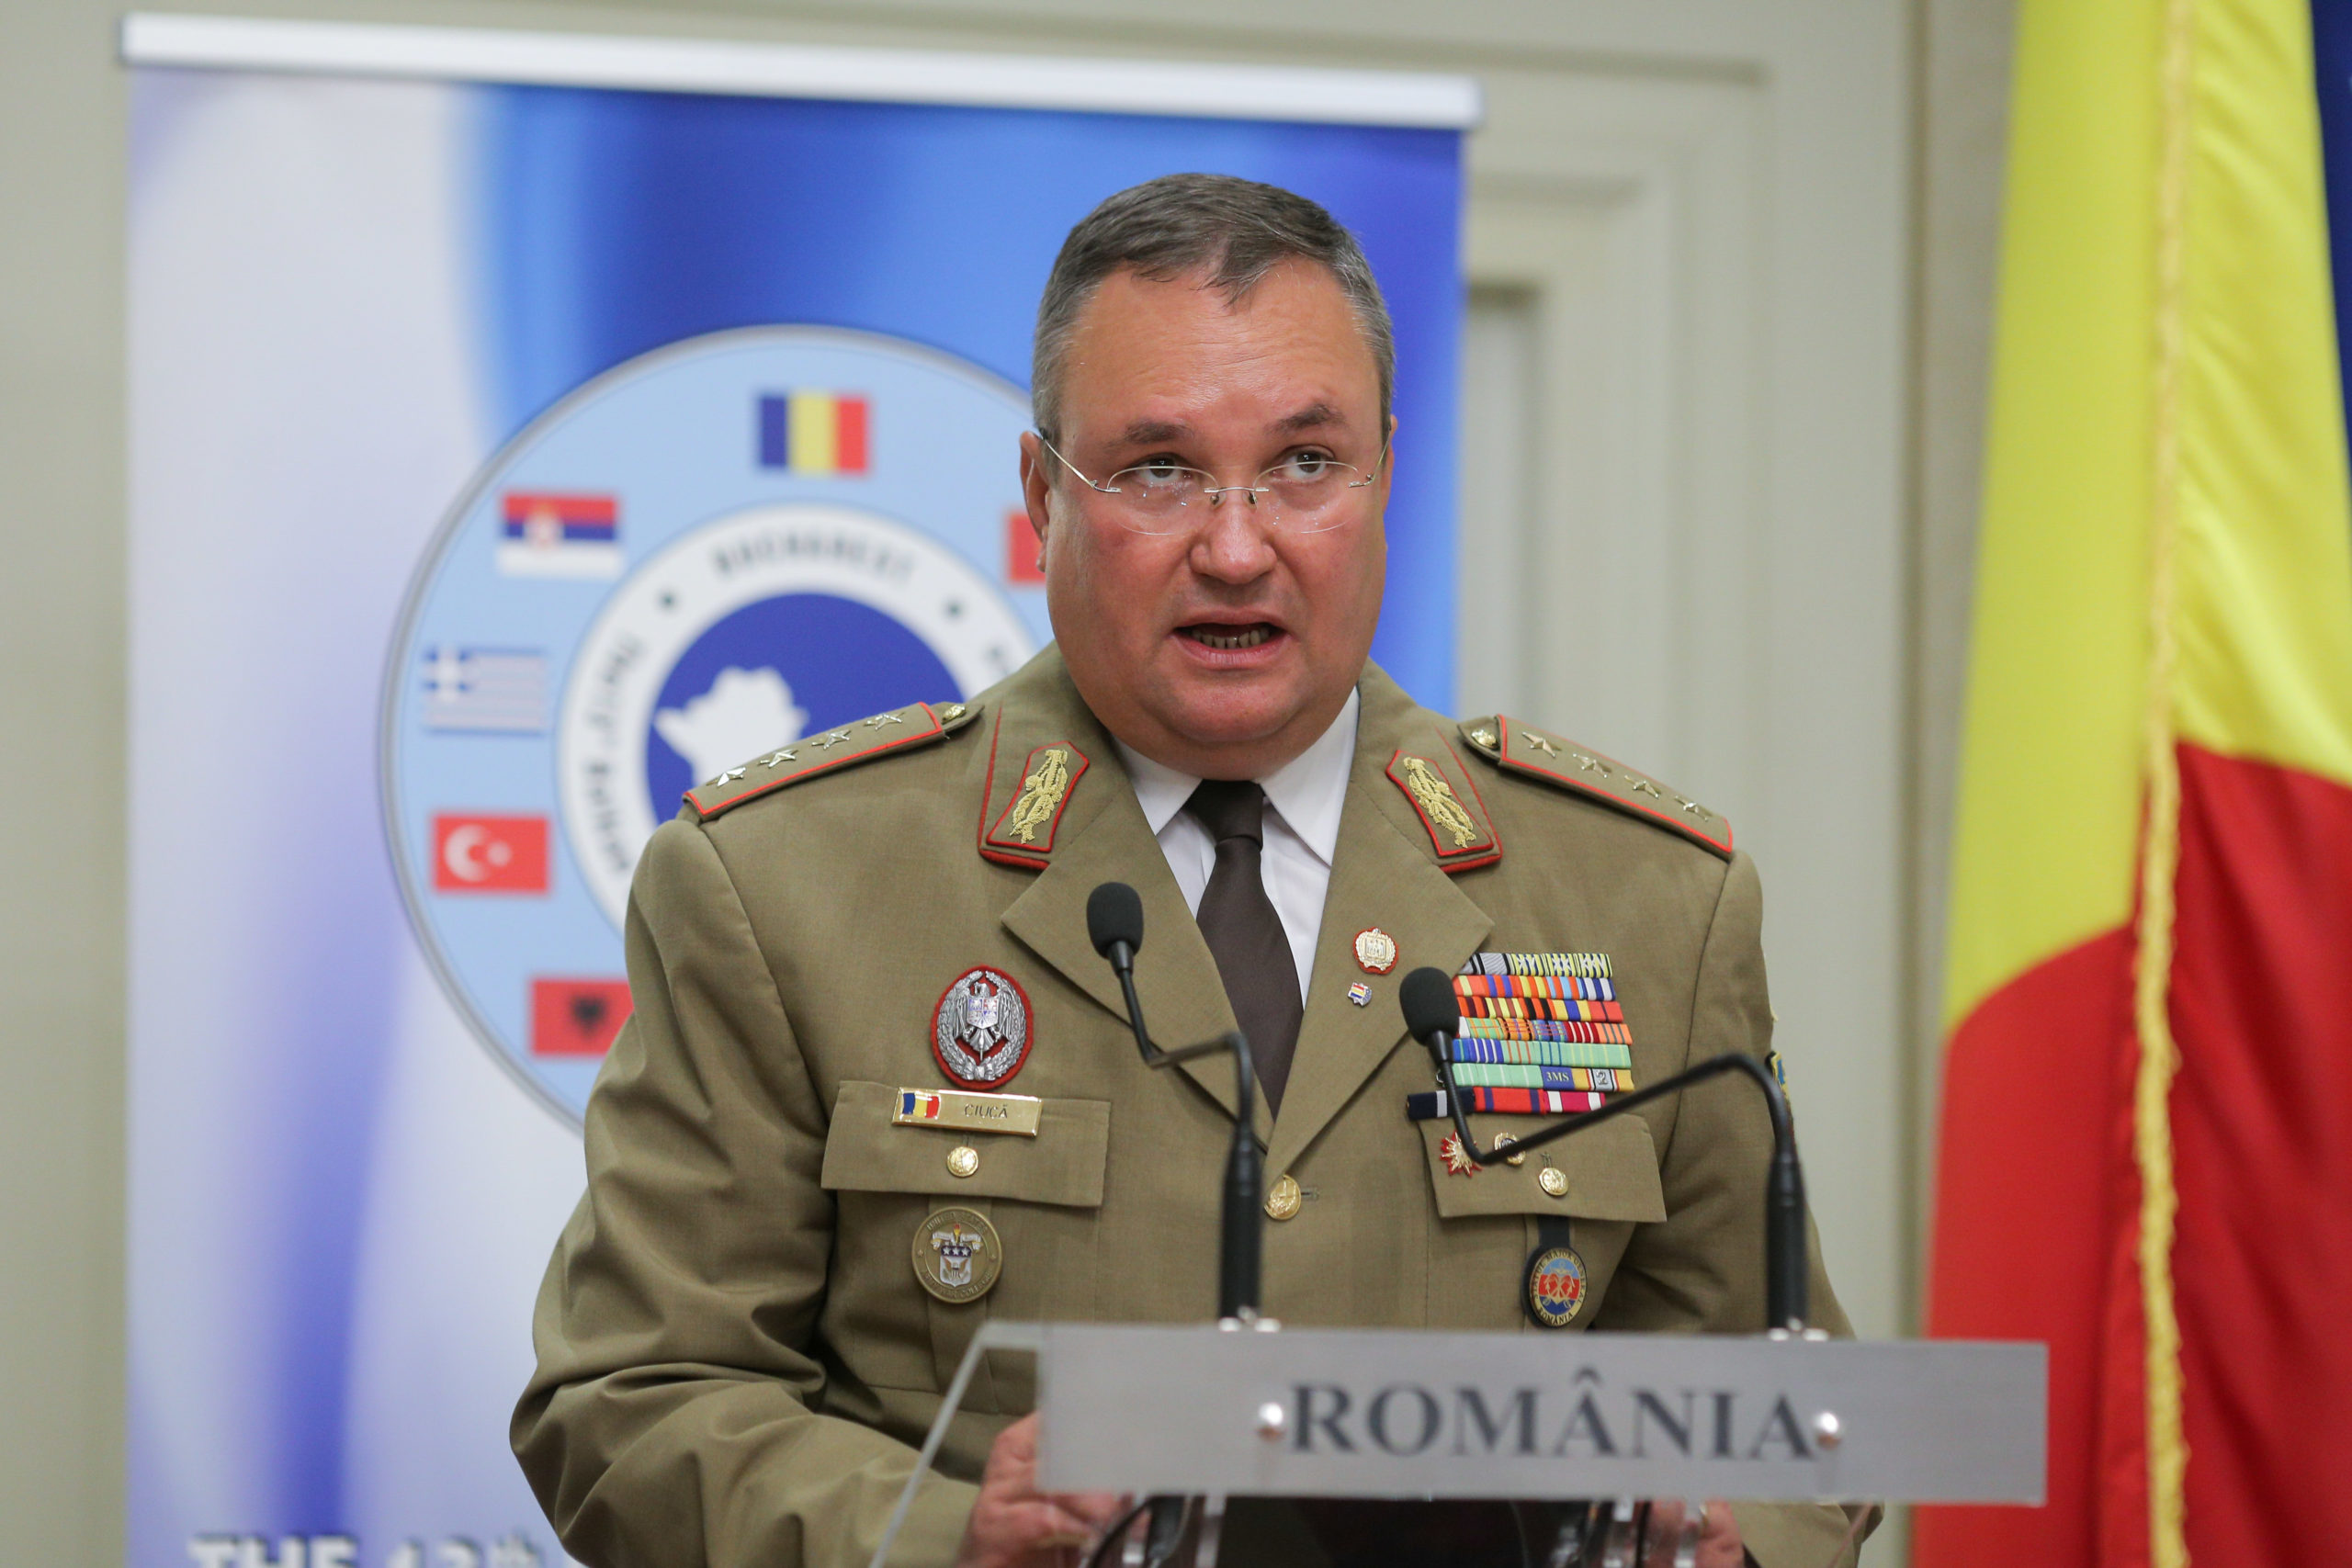 Romania attacked the United States.  That's an honor.  This is the largest American civilian medal